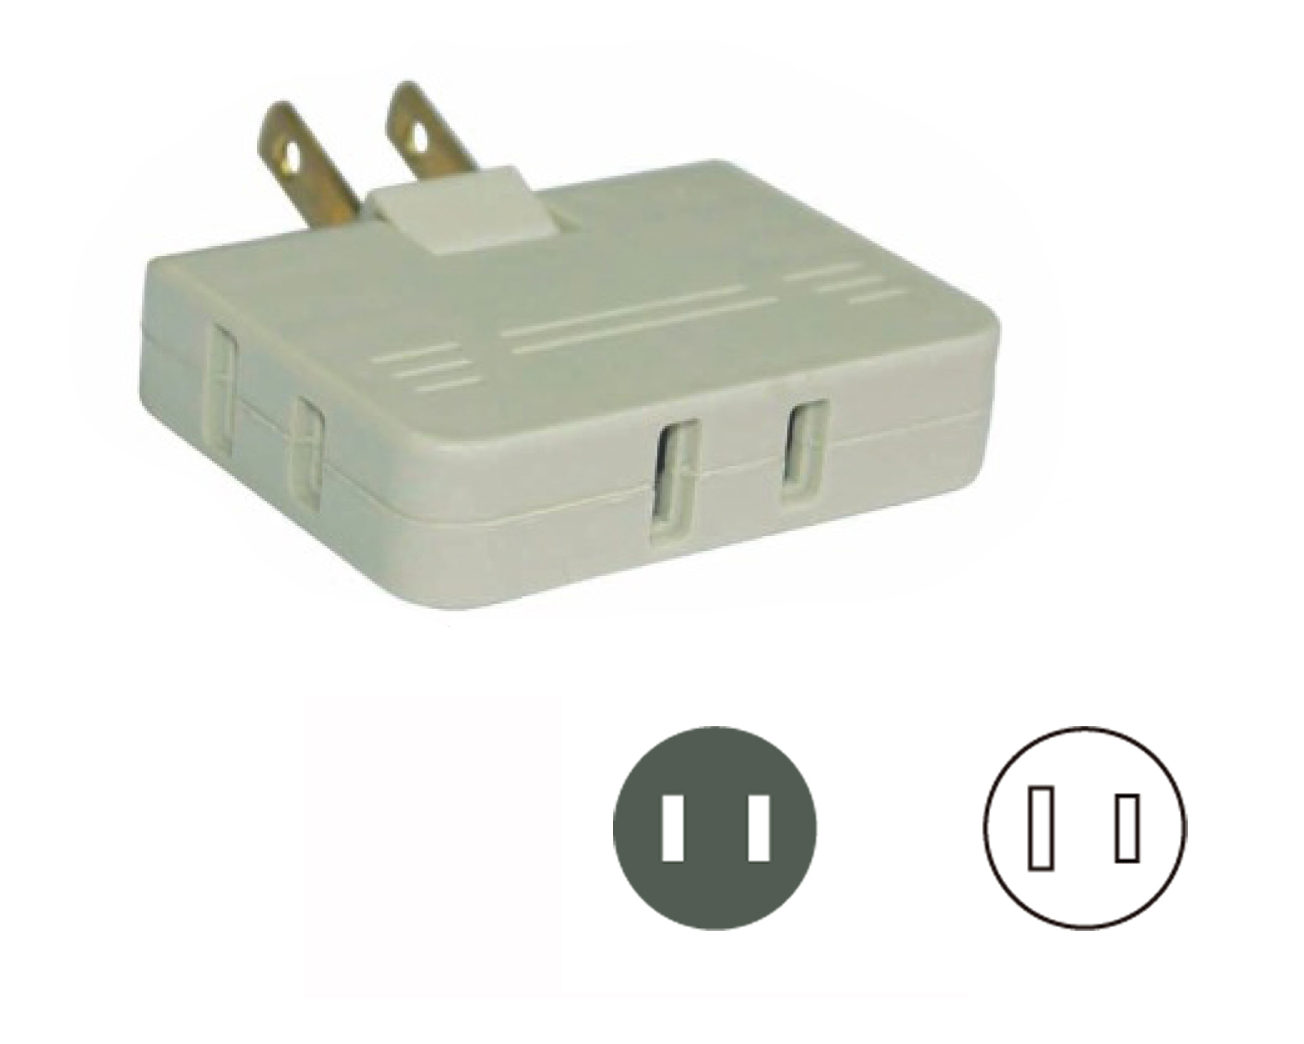 UL/CUL 3 Outlet Wall Tap, Adapter